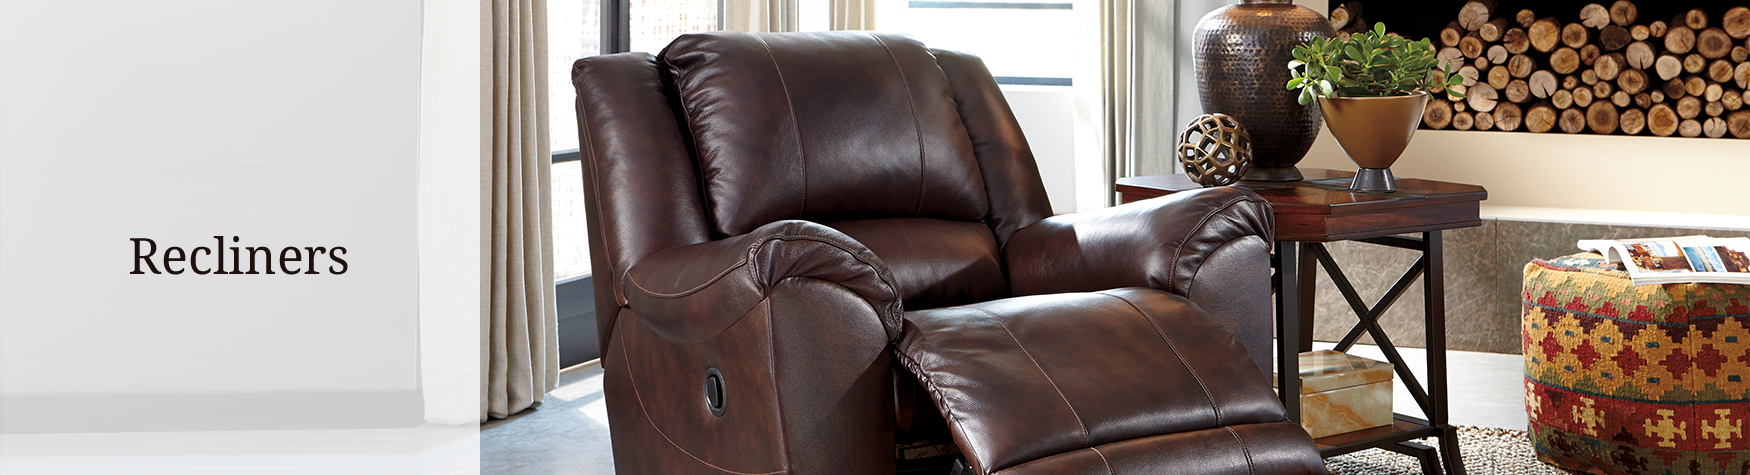 recliners-banner.png